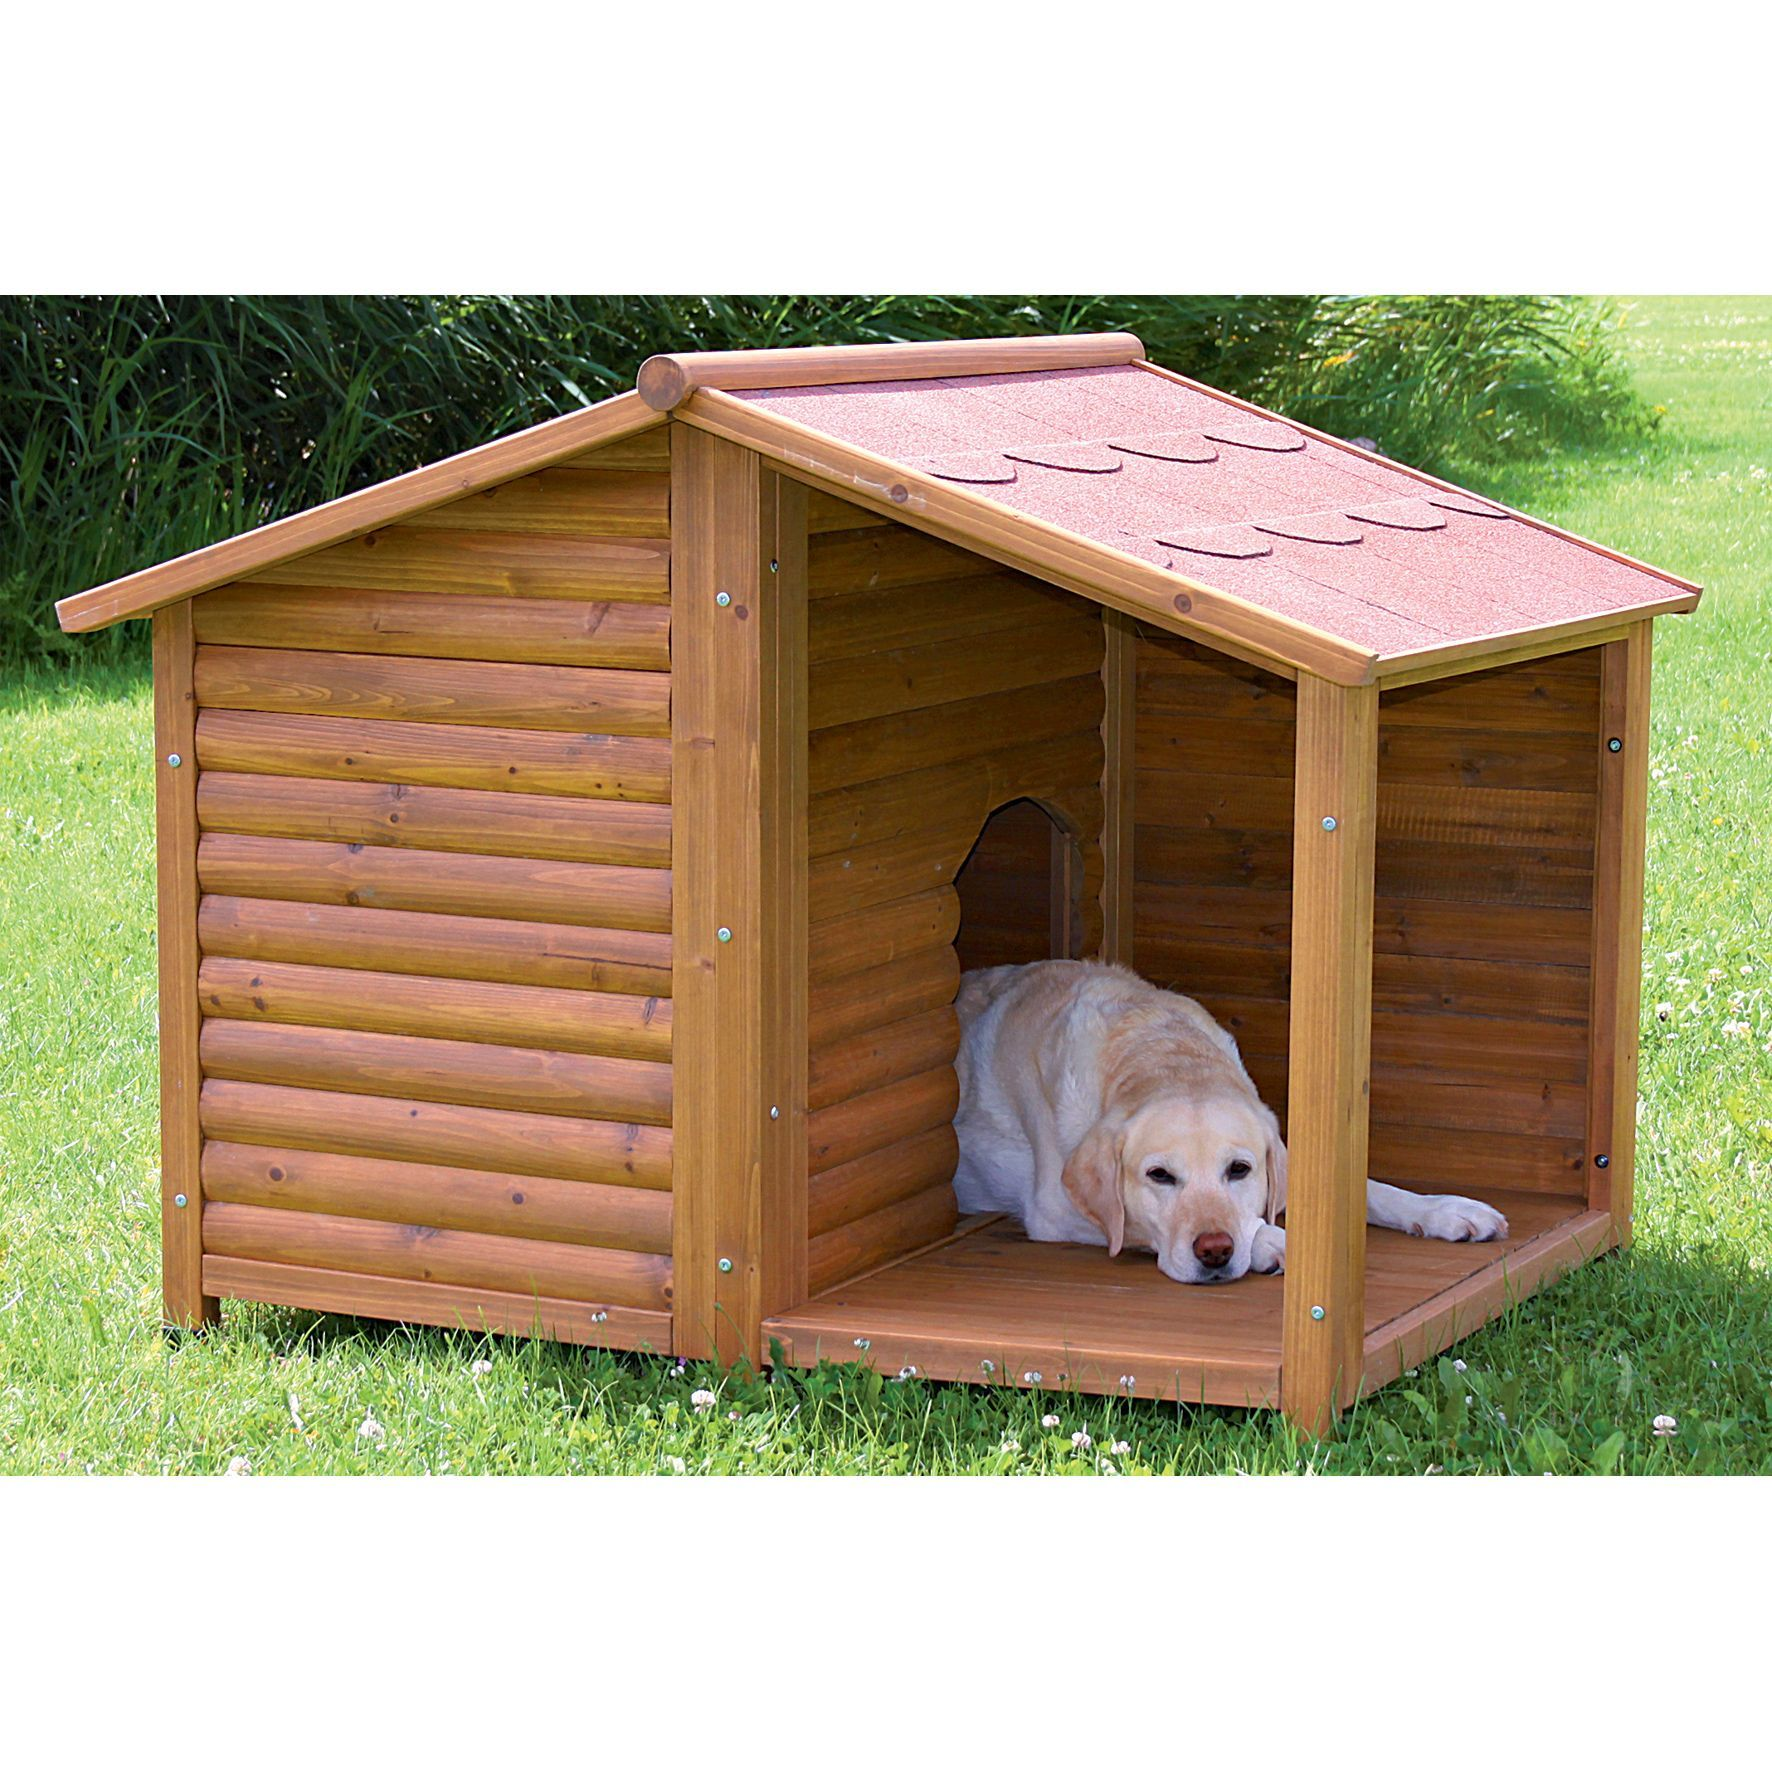 Rugged Large Dog House: Give Your Best Friend Protection From Mother Nature's